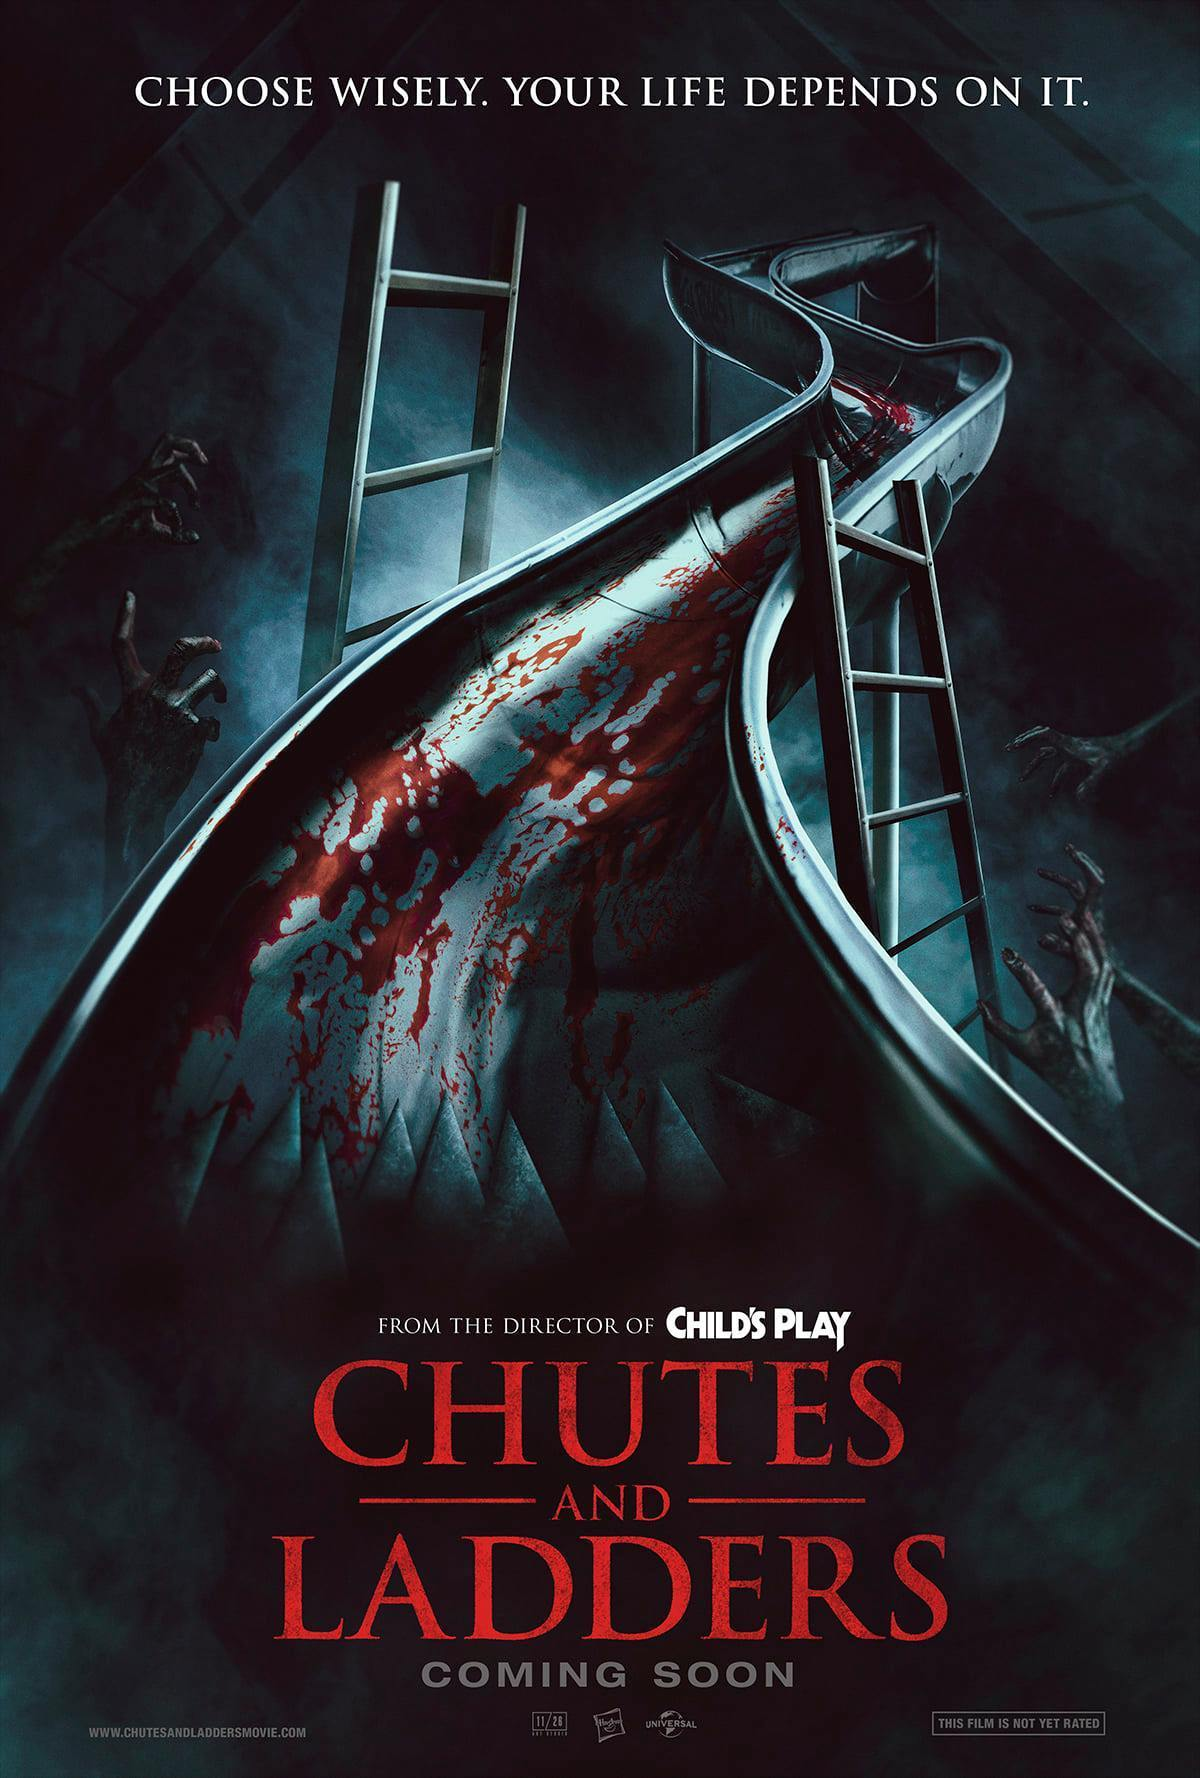 Chutes and Ladders horror movie concept